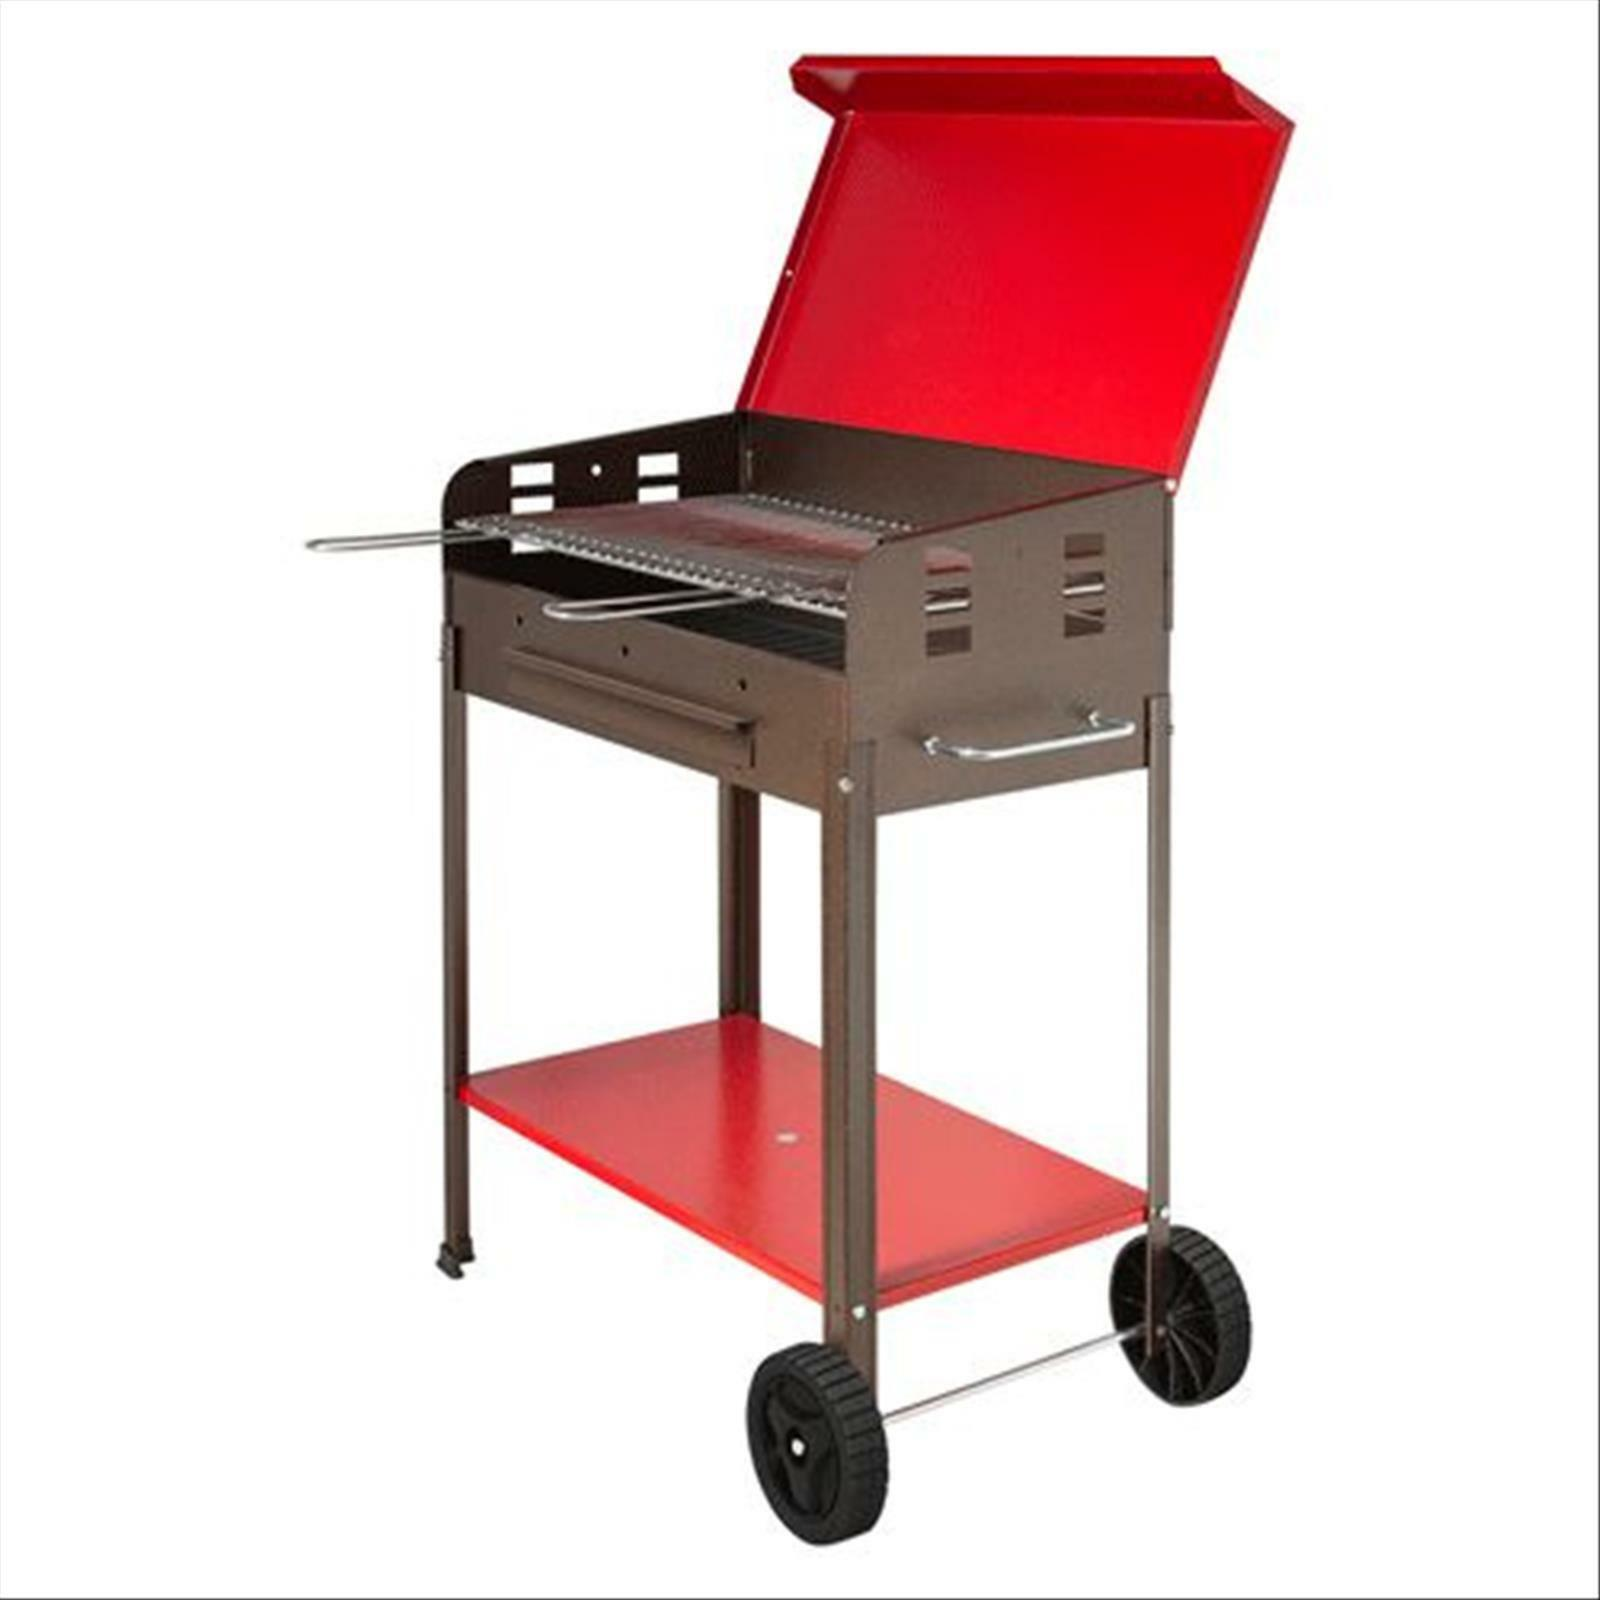 MILLE BARBECUE CARBONE 501.A 'VANESSA'